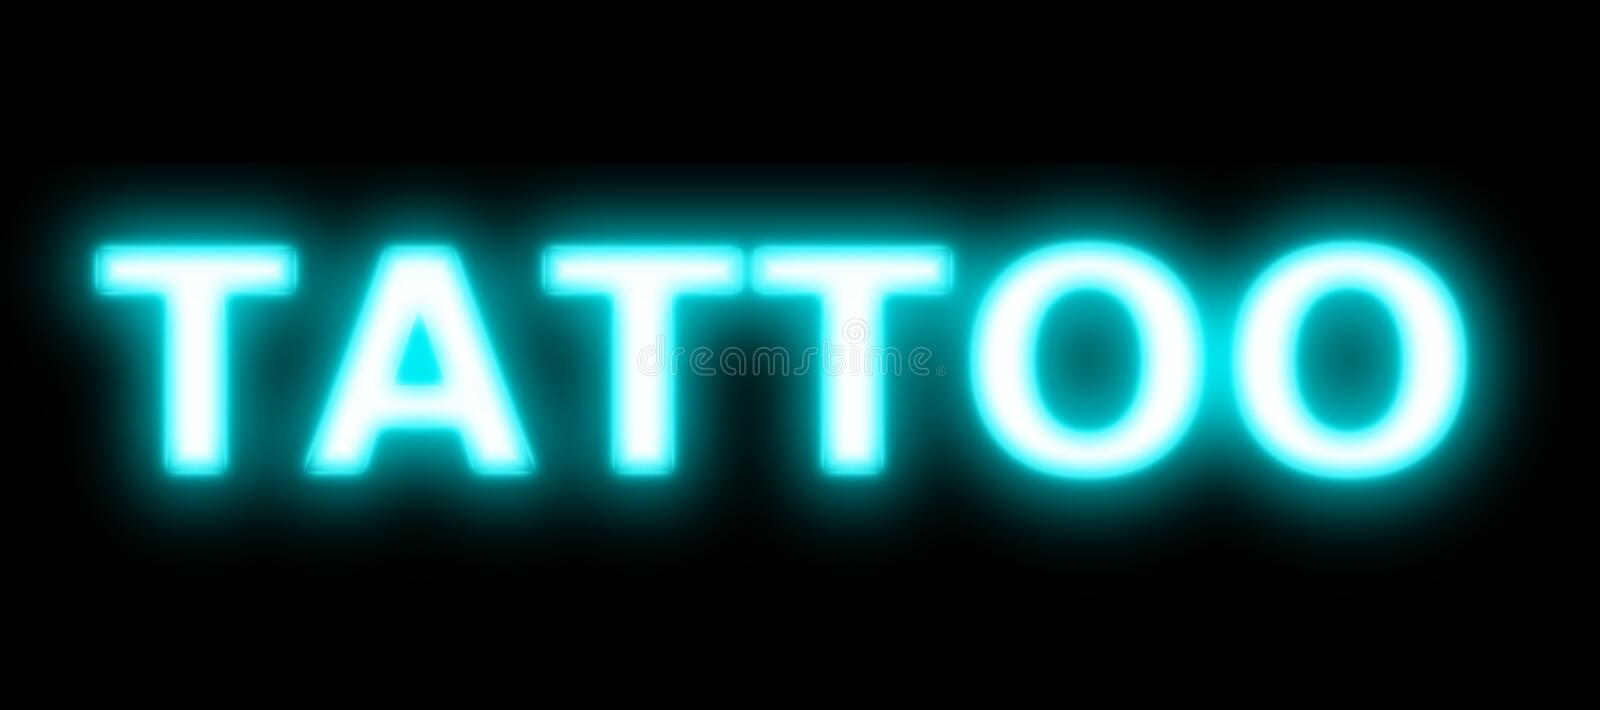 Tattoo shop blue neon sign royalty free stock images